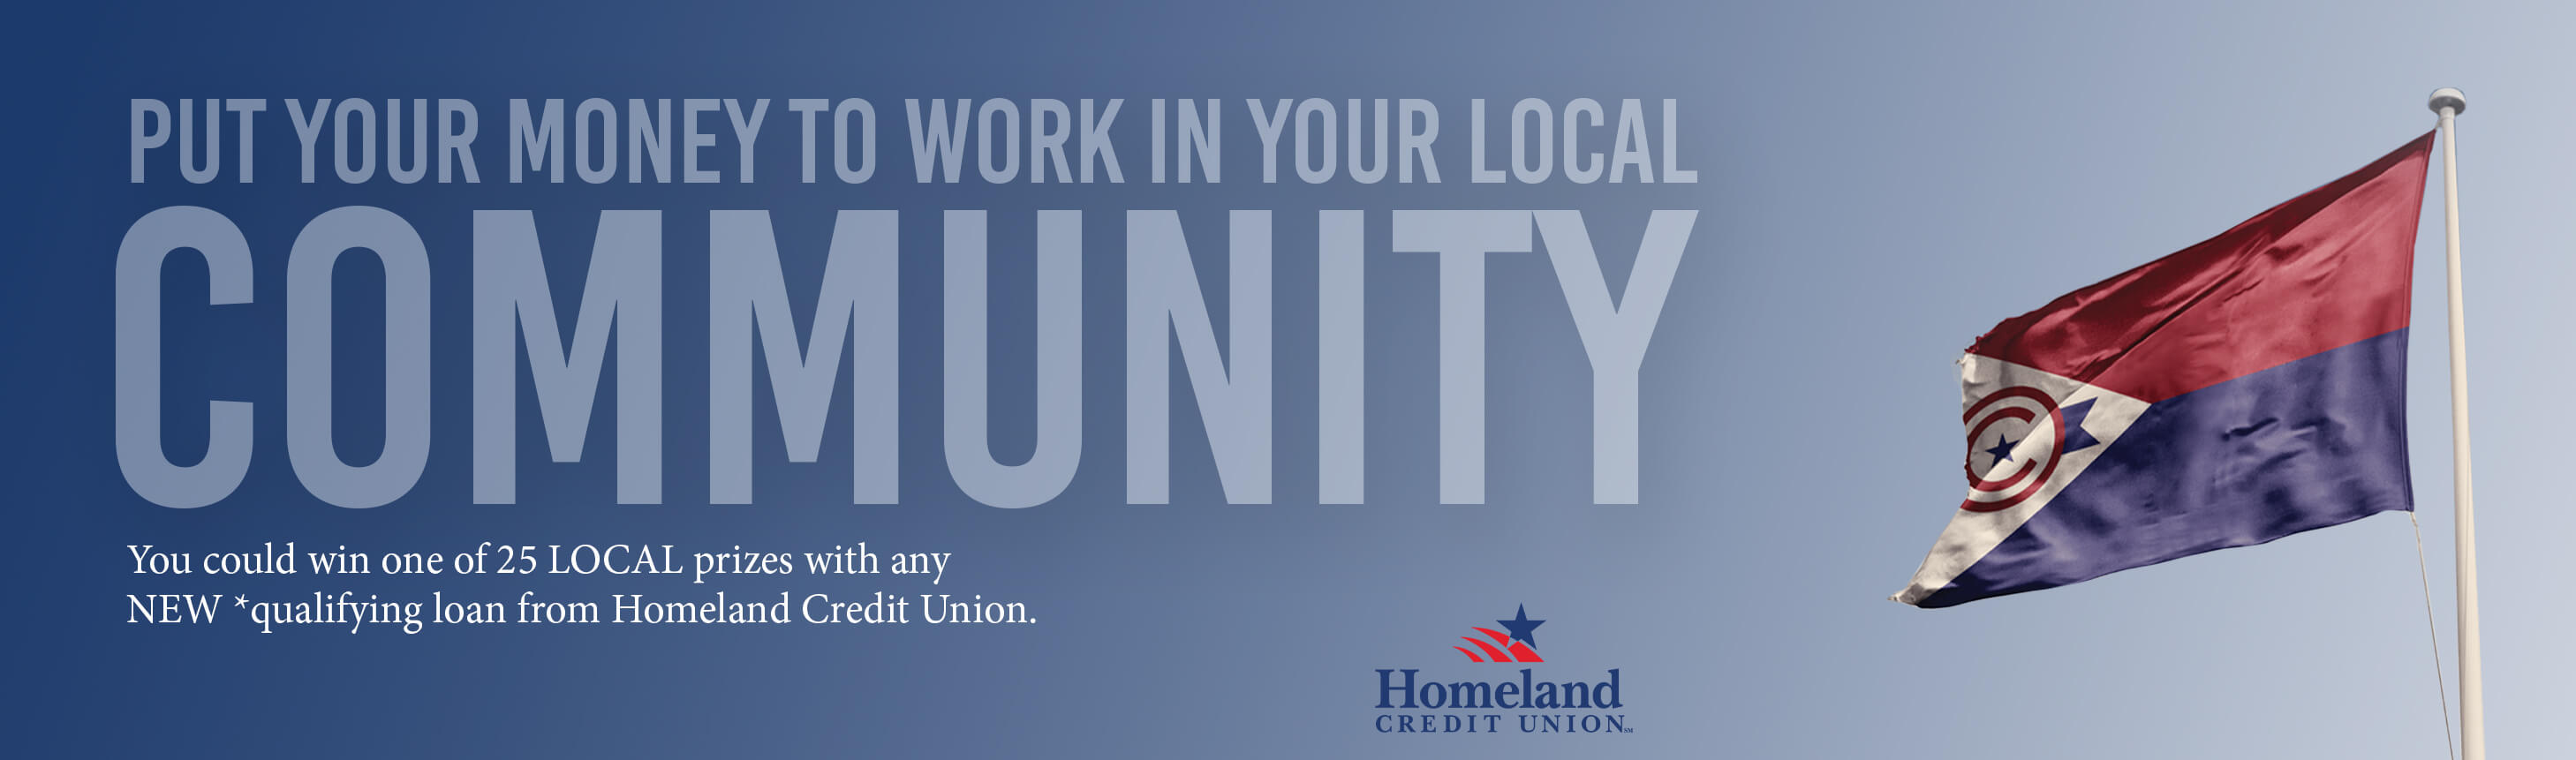 Put your money to work in your local community. You could win one of 25 local prizes with any NEW *qualifying loan from Homeland Credit Union